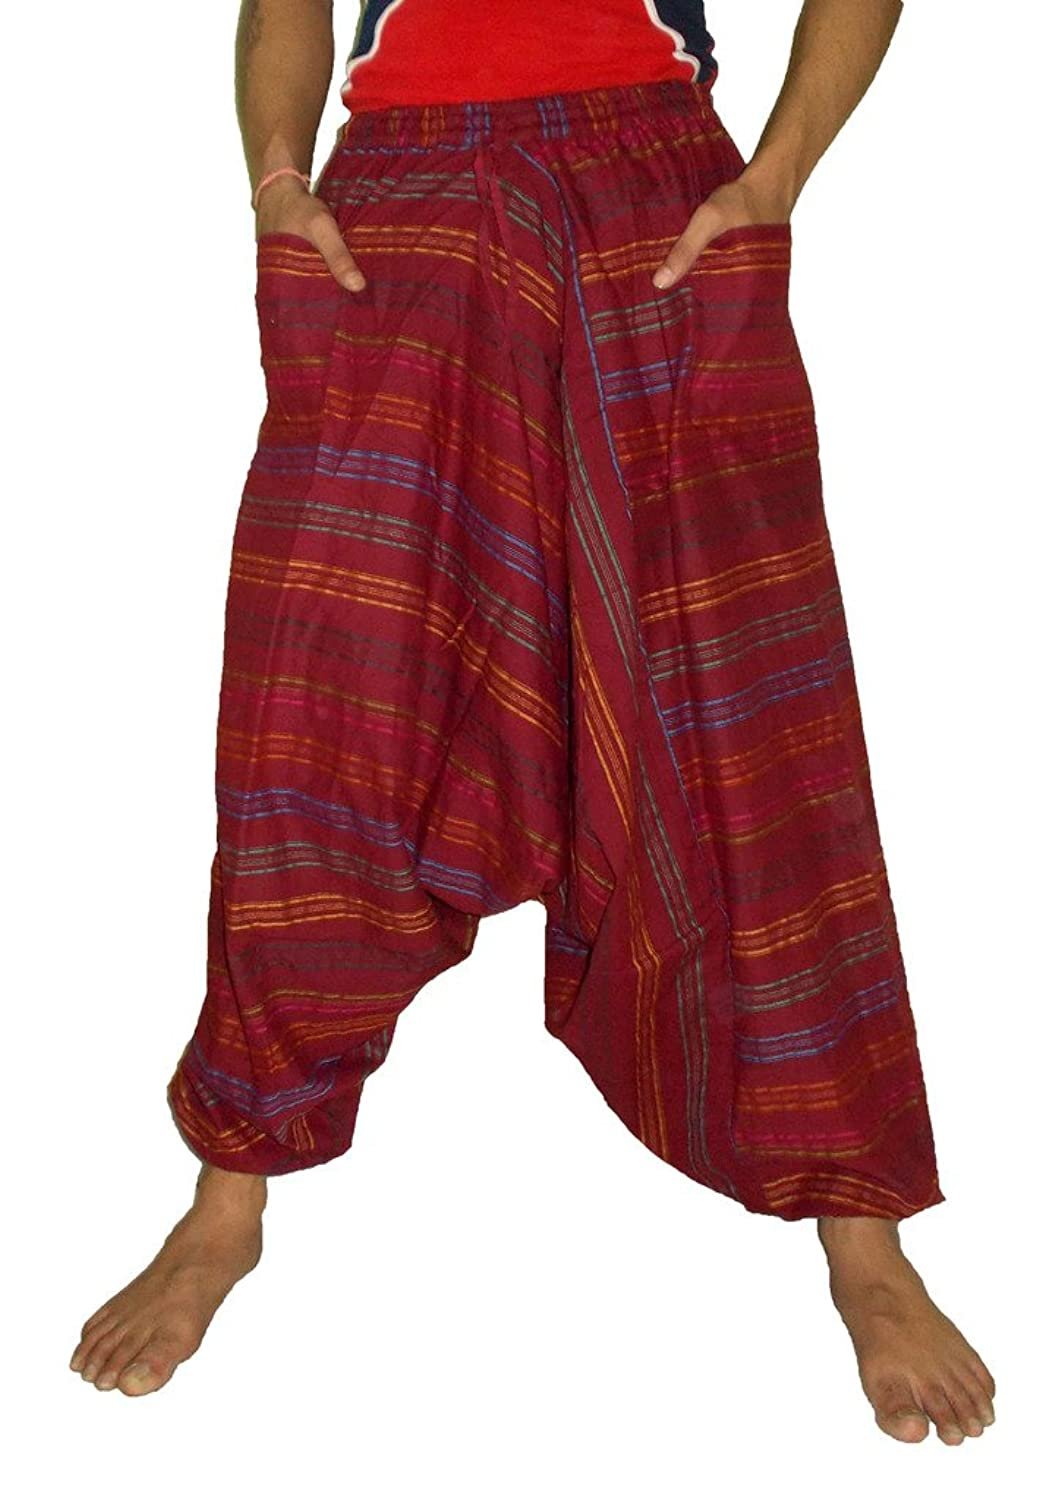 Men's Cotton Harem Genie Dance Yoga Alibaba Hippie Pants